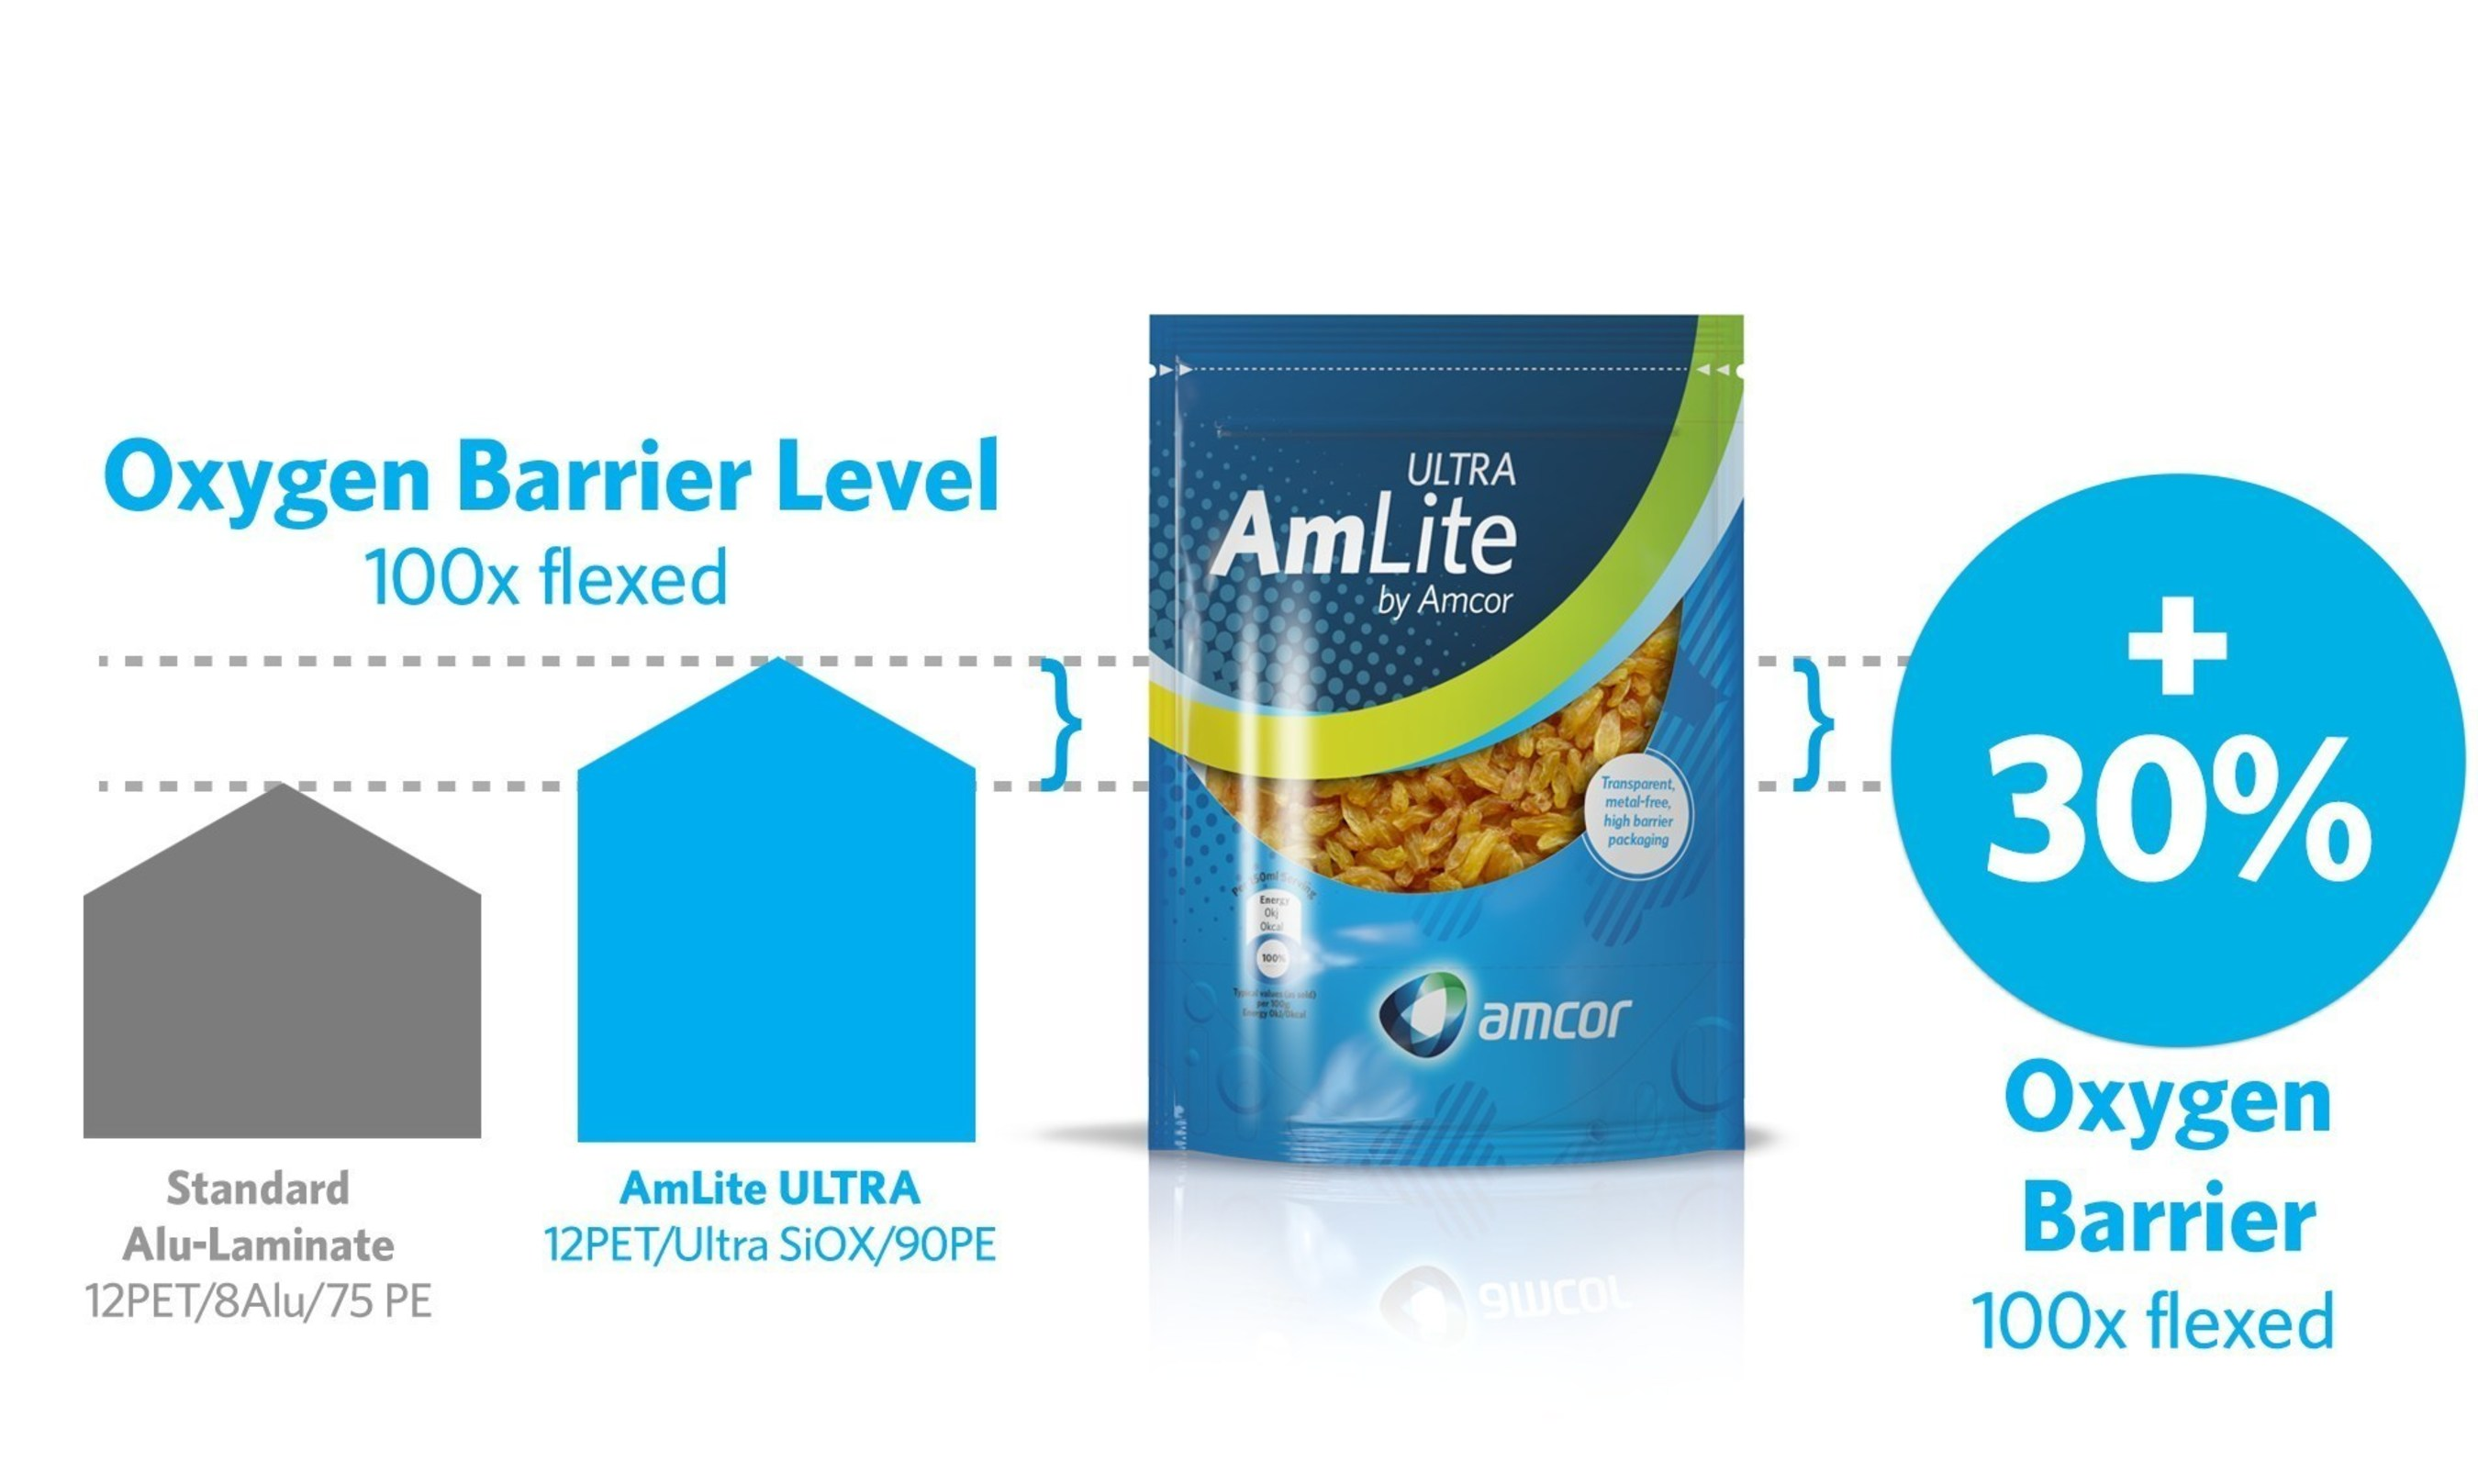 The AmLite Ultra oxygen barrier tested 30% higher than that of the standard aluminium laminate after 100 Gelbo-Flex cycles